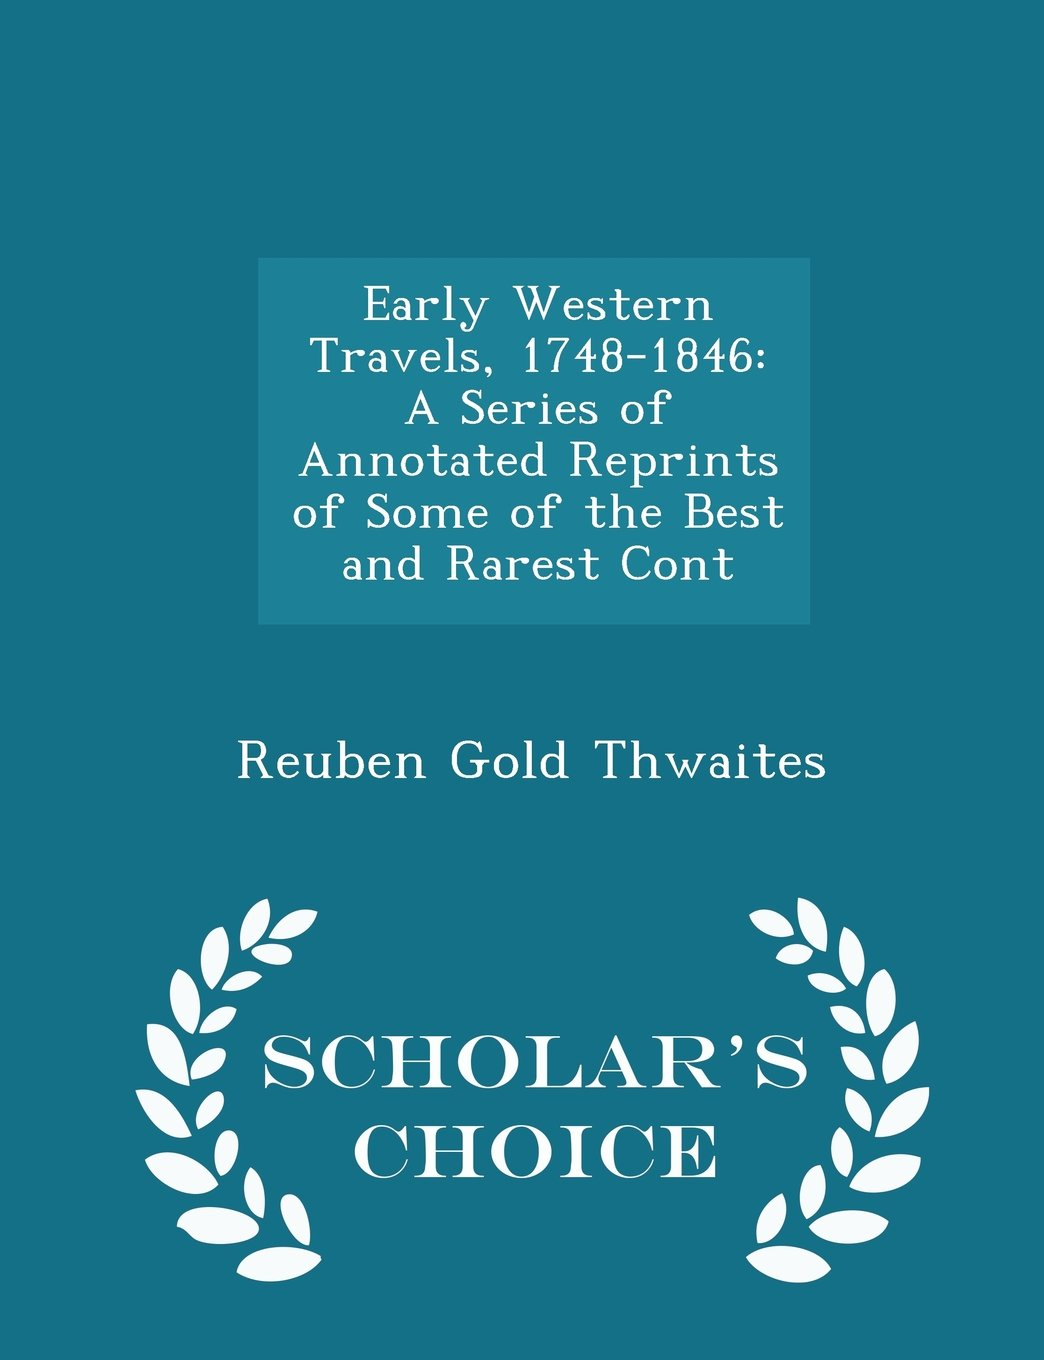 Early Western Travels, 1748-1846: A Series of Annotated Reprints of Some of the Best and Rarest Cont - Scholar's Choice Edition pdf